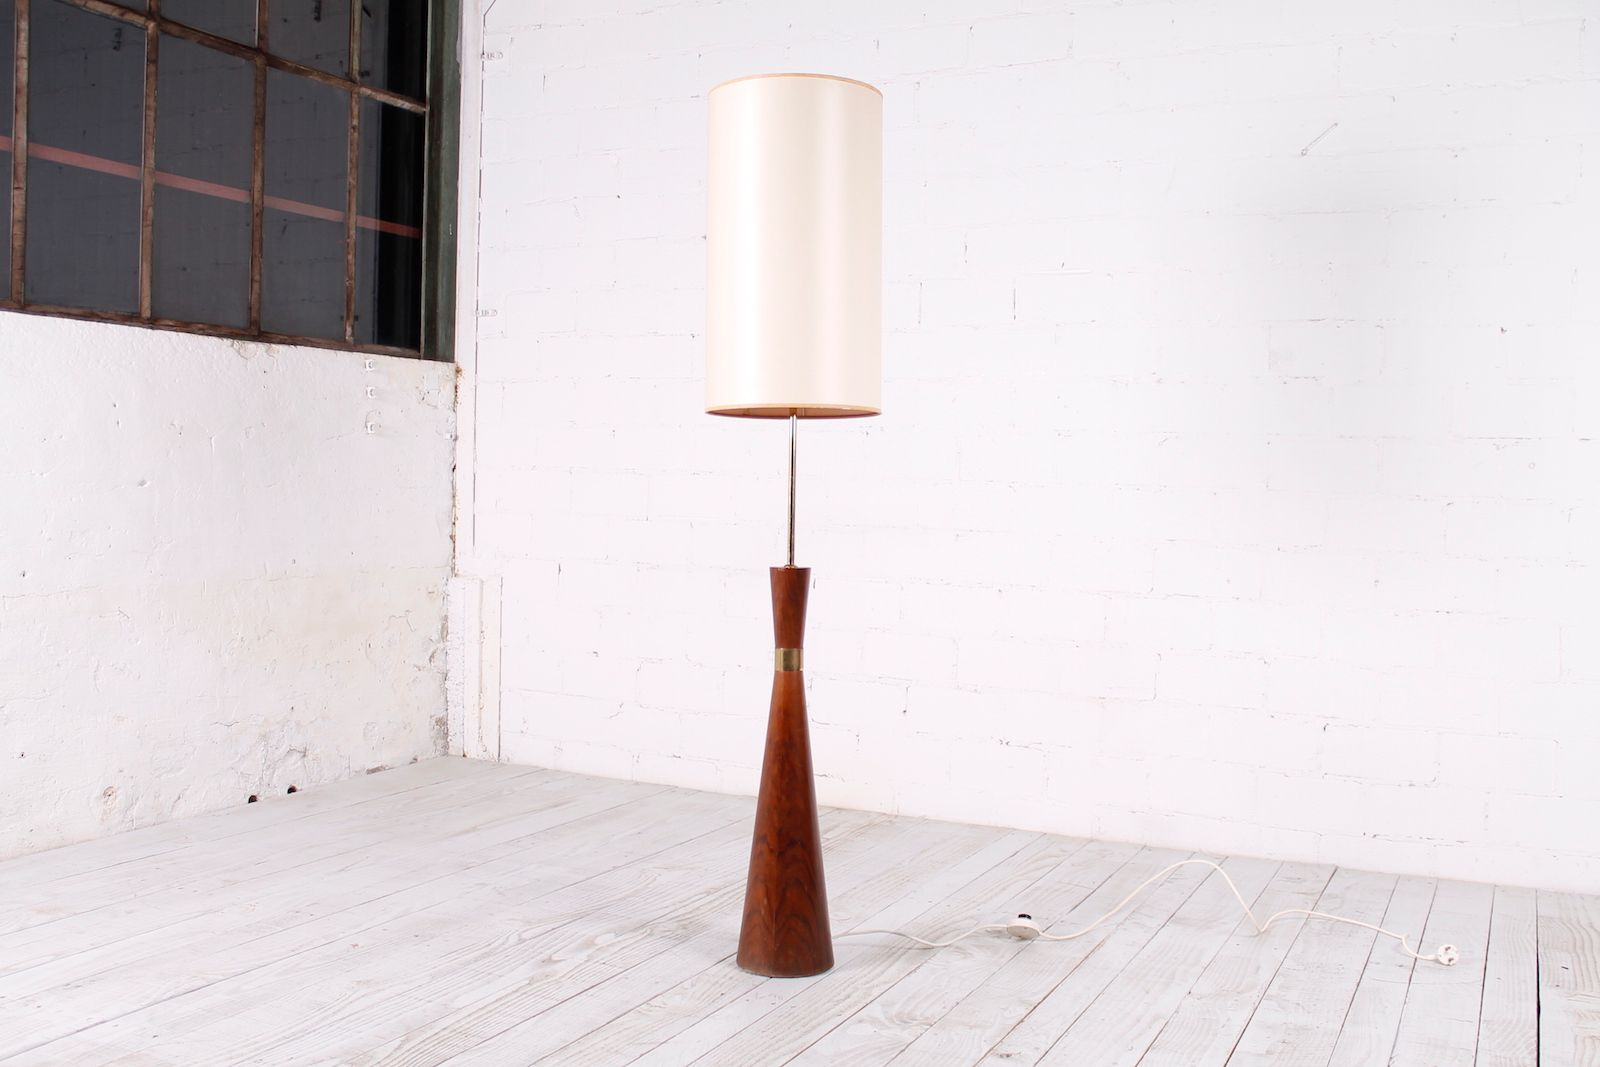 Mid-Century Spindle Floor Lamp, 1950s for sale at Pamono